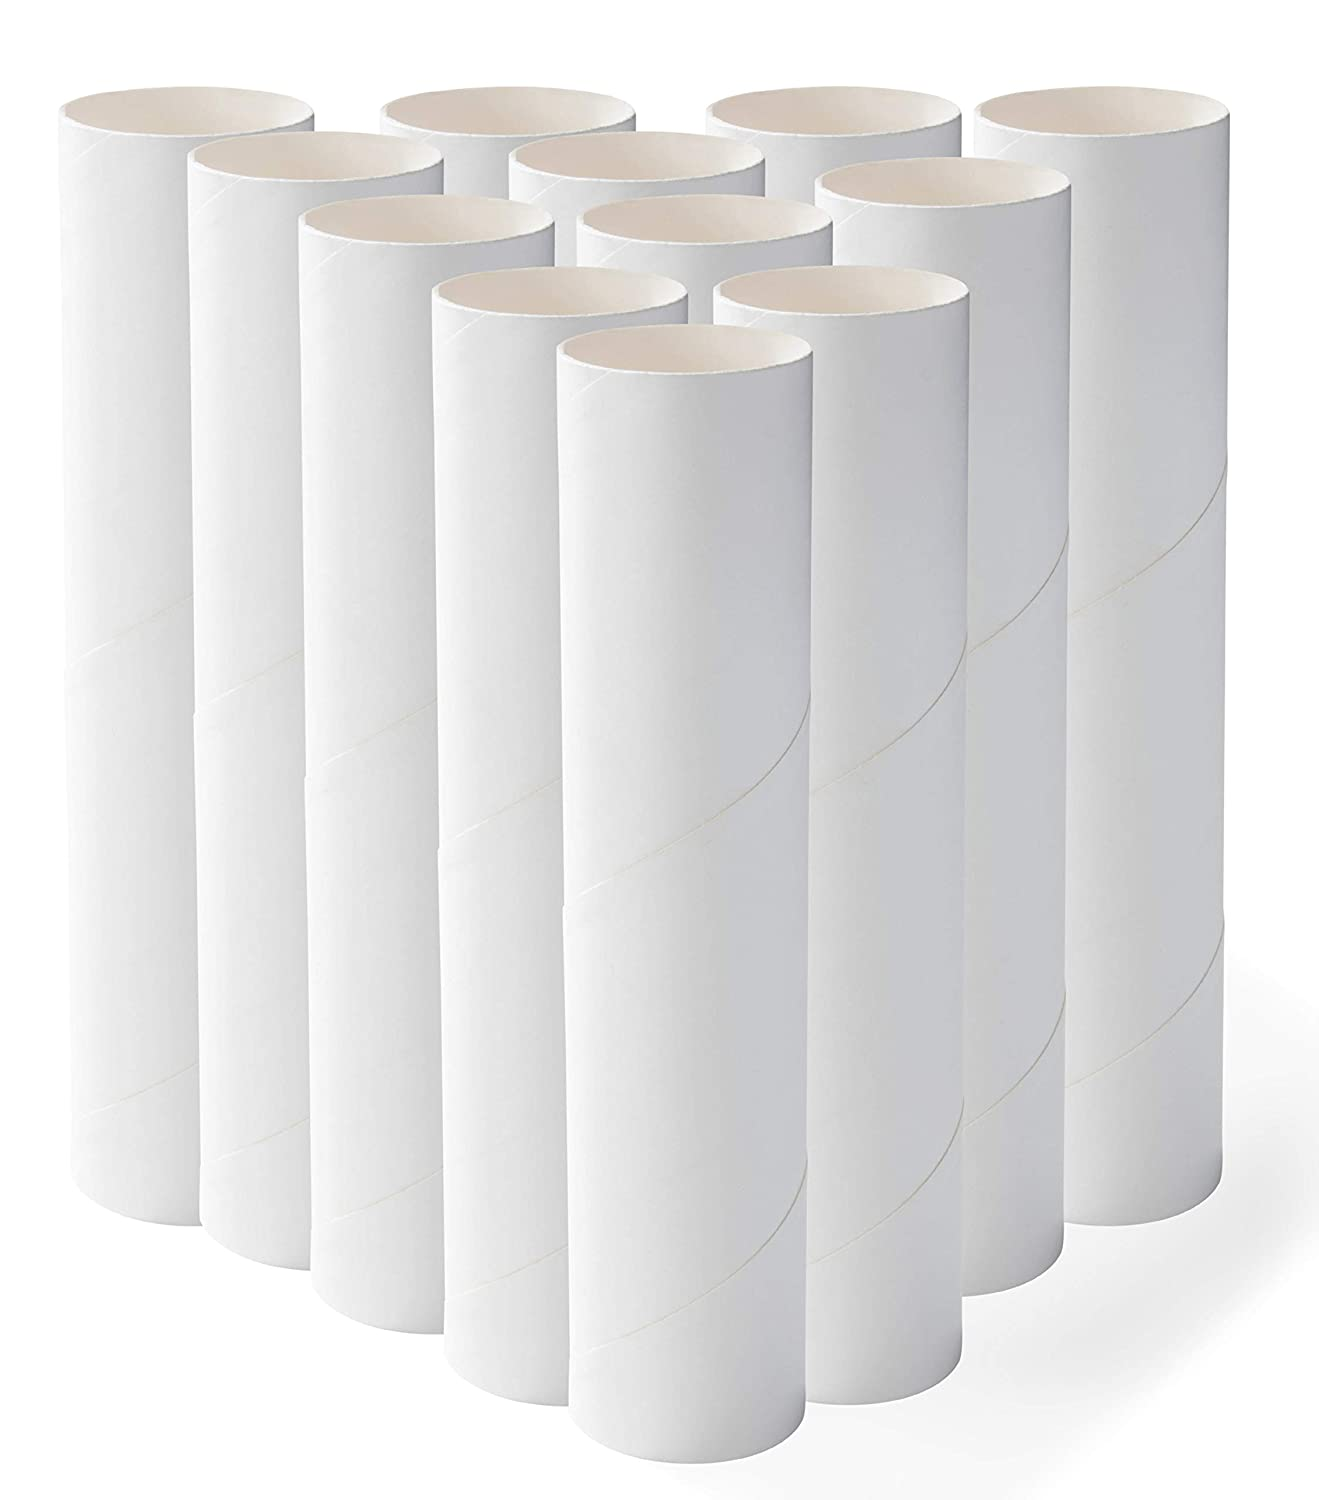 8-Inch White Paper Cardboard Tubes for DIY Arts and Crafts Projects Genie Crafts 12-Pack Craft Rolls